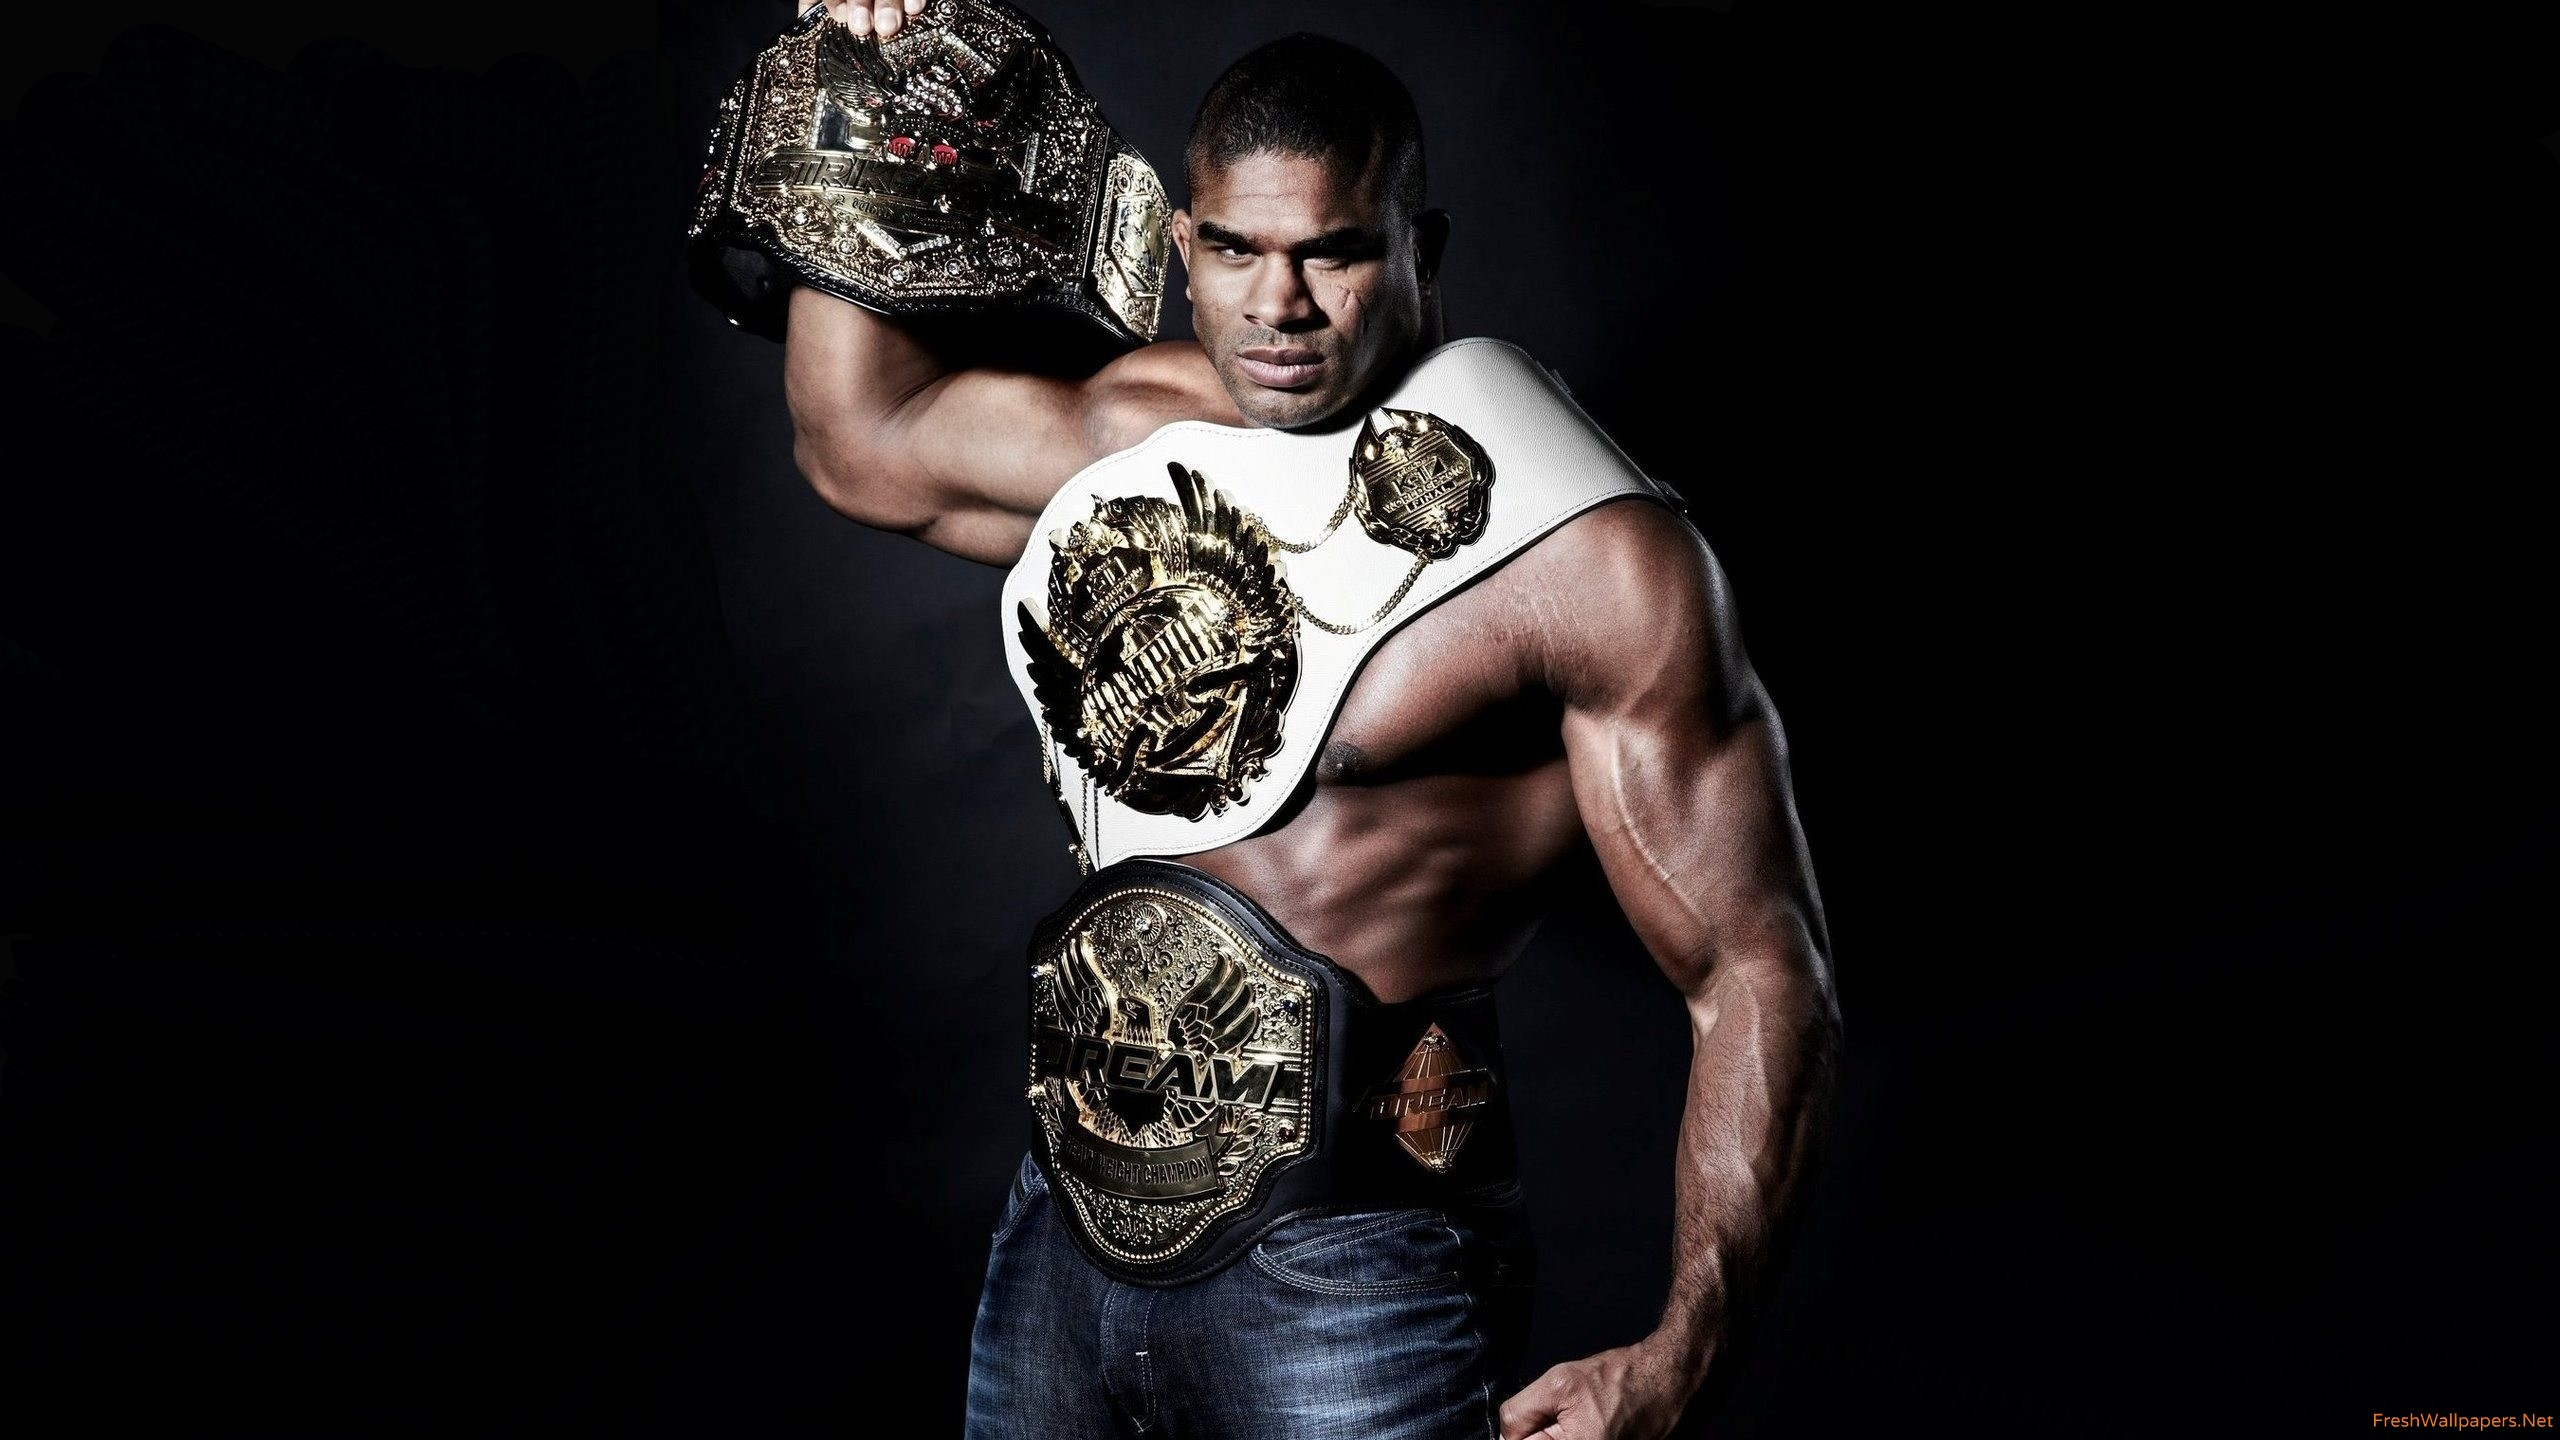 2560x1440 - Alistair Overeem Wallpapers 1